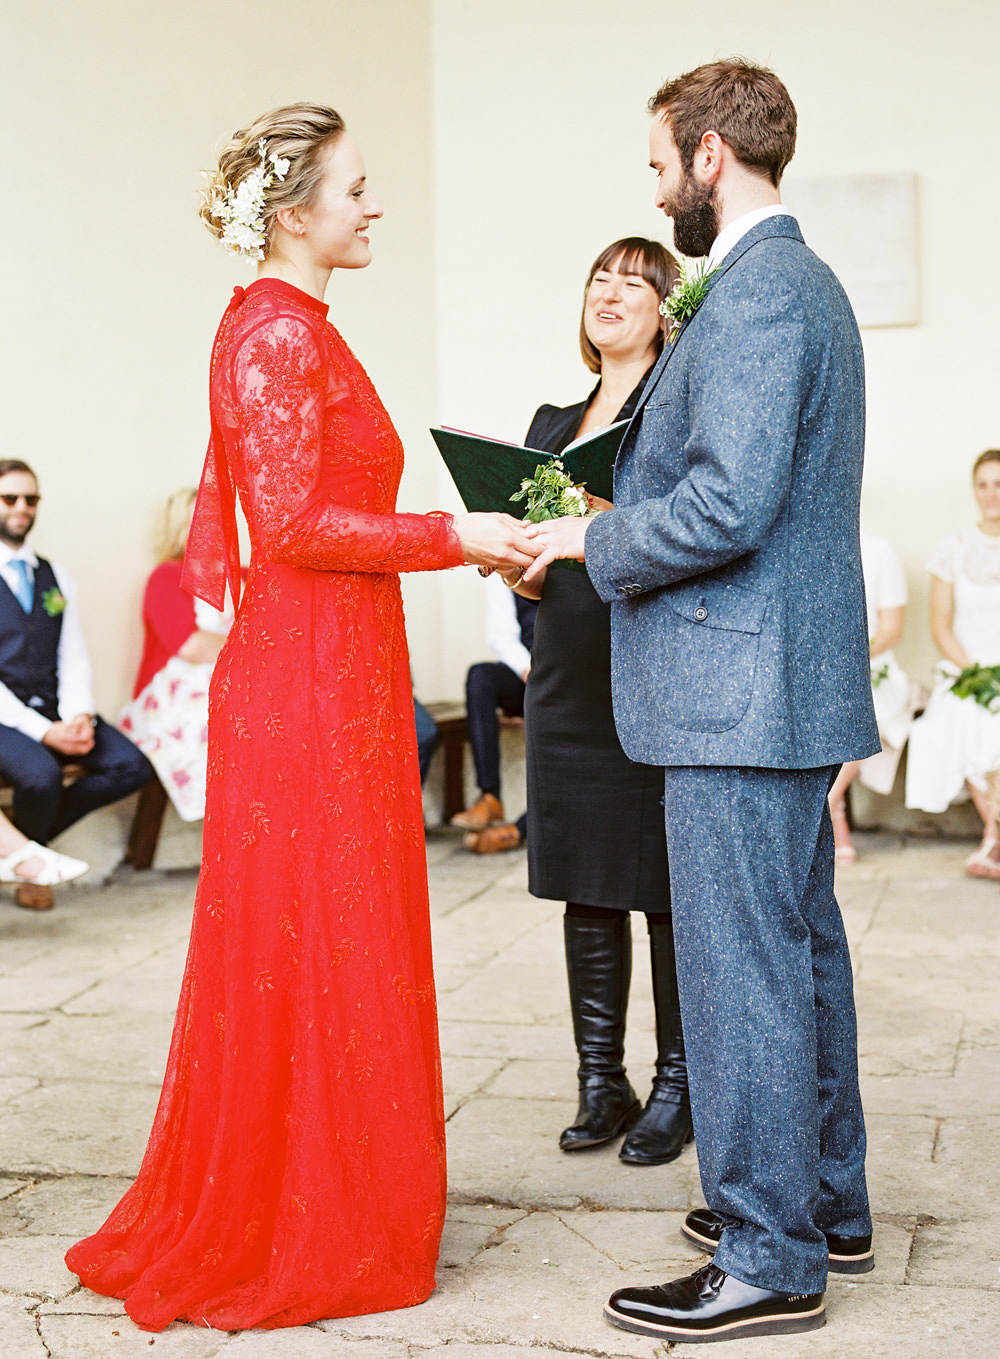 Red Valentino Wedding Dress for an Outdoor Humanist Ceremony ...